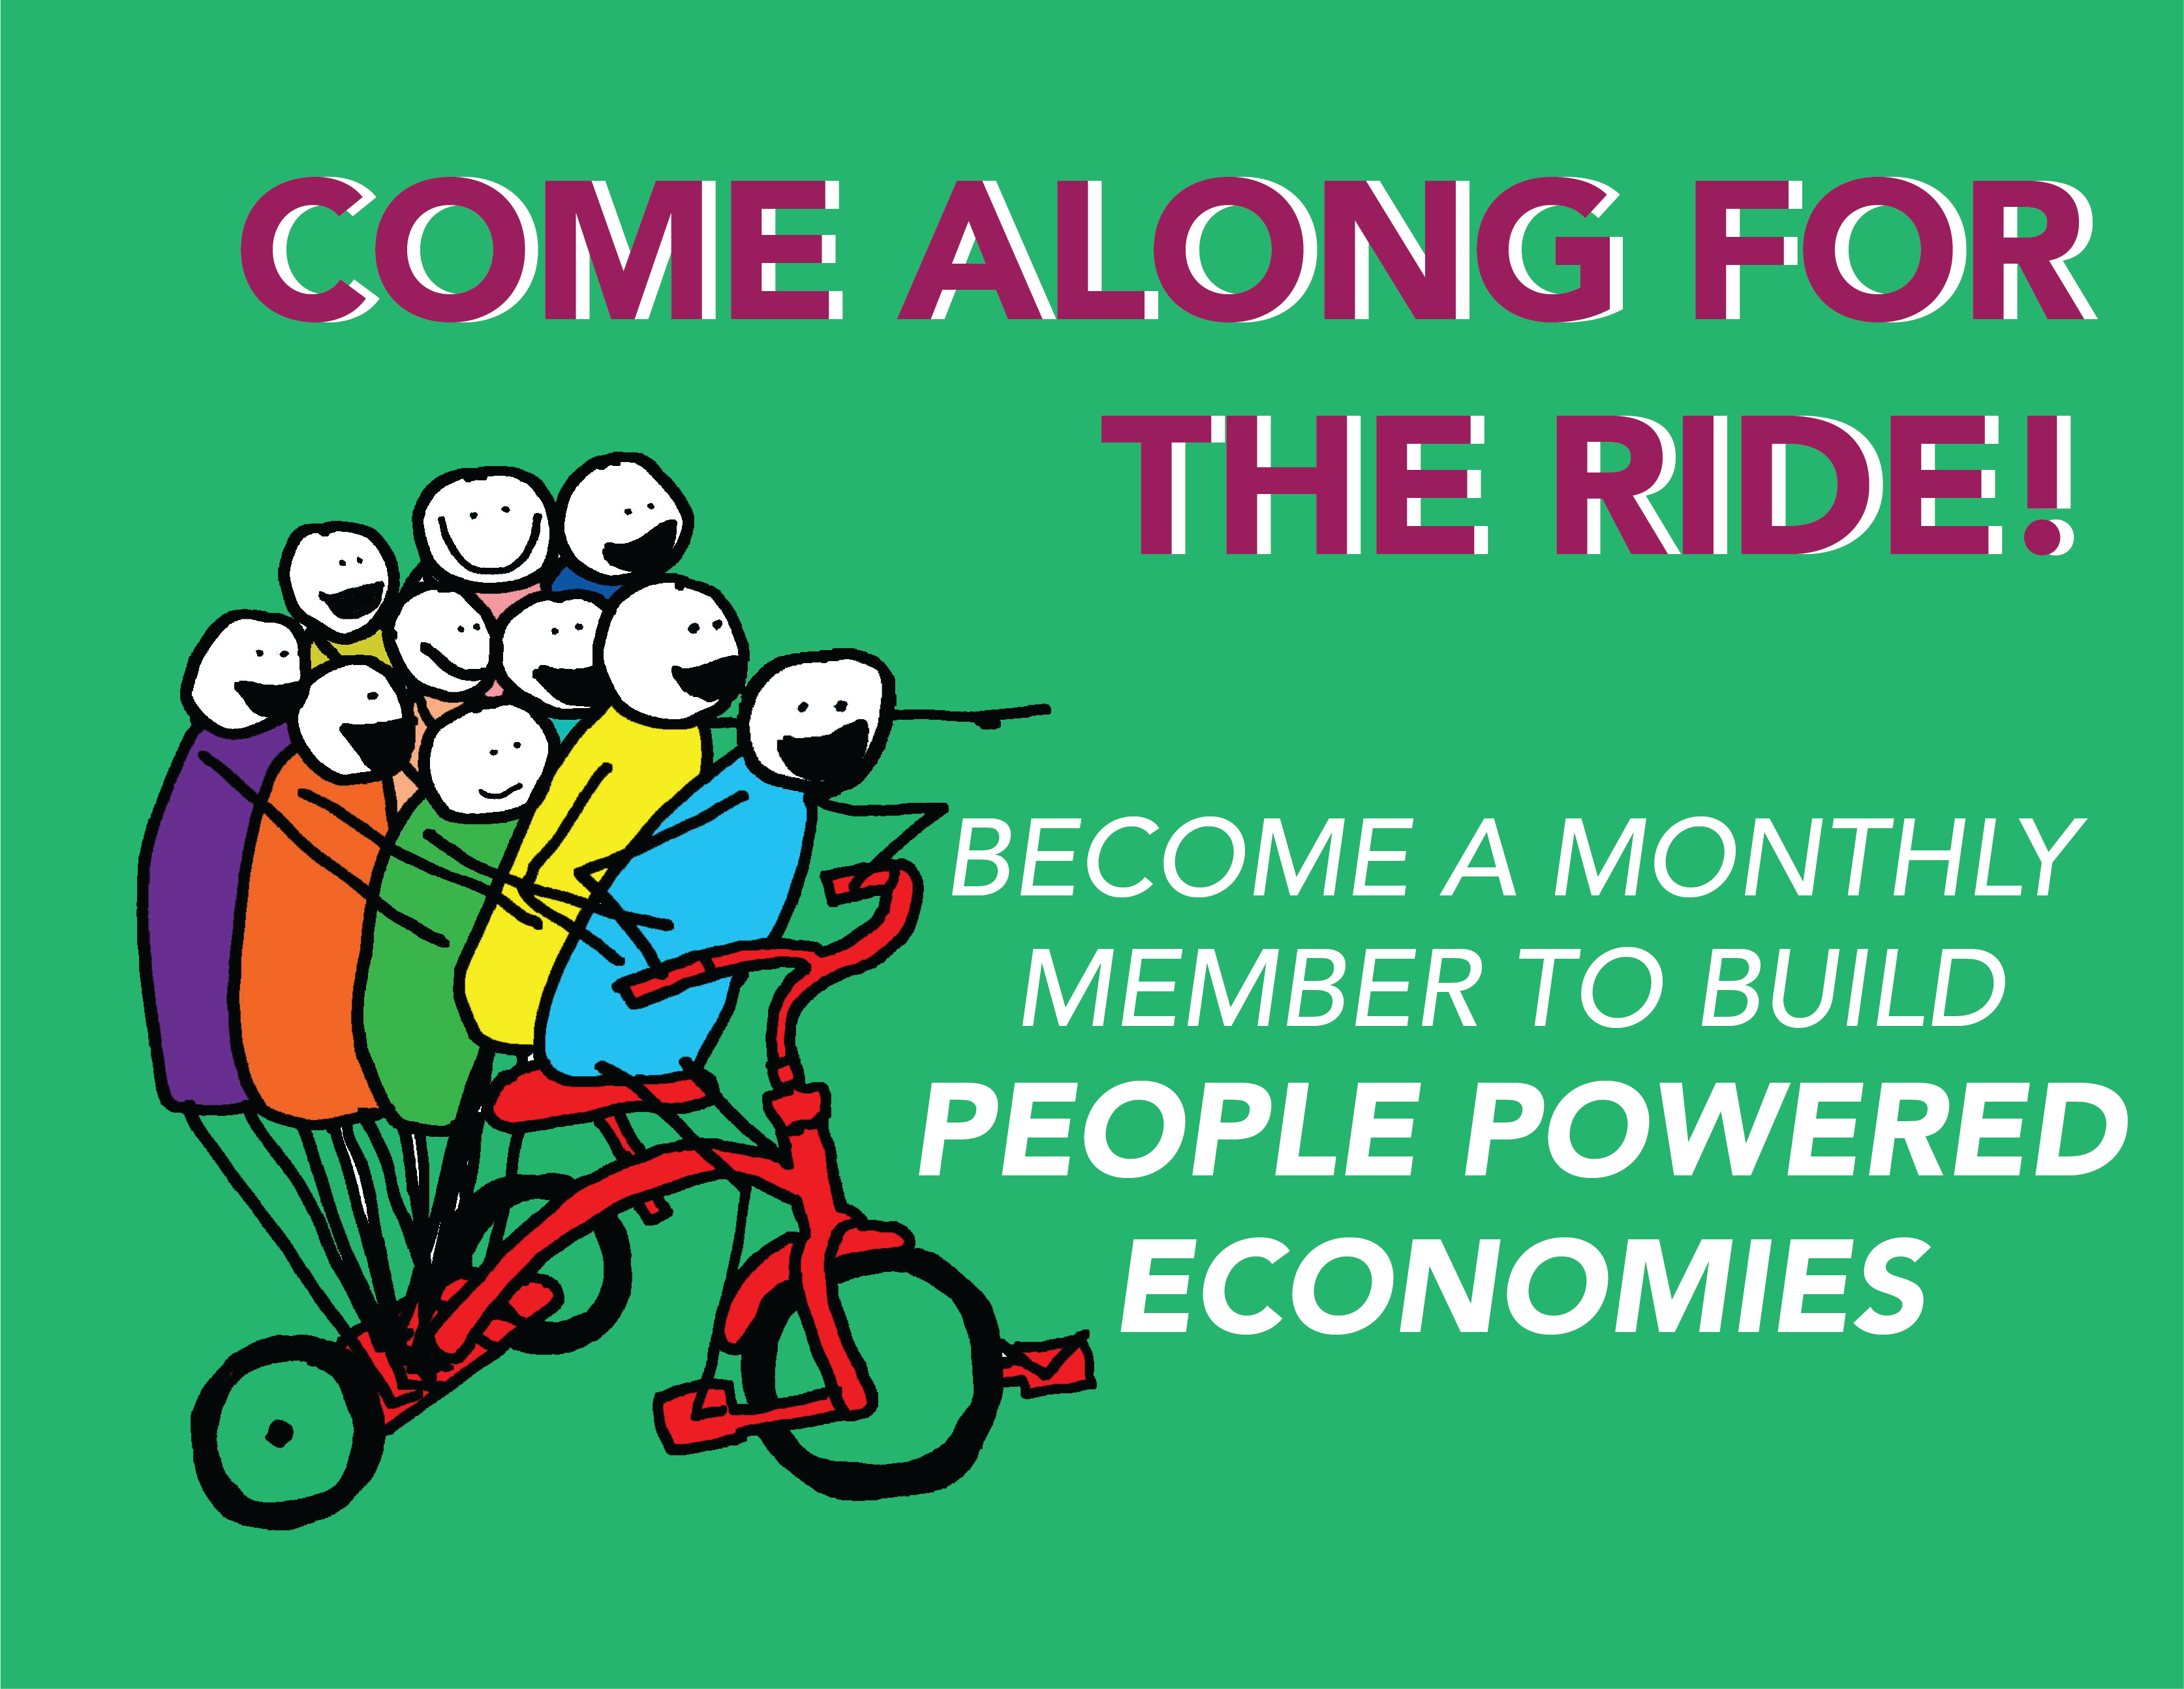 Support People Powered Economies by donating to SELC's Spring Campaign